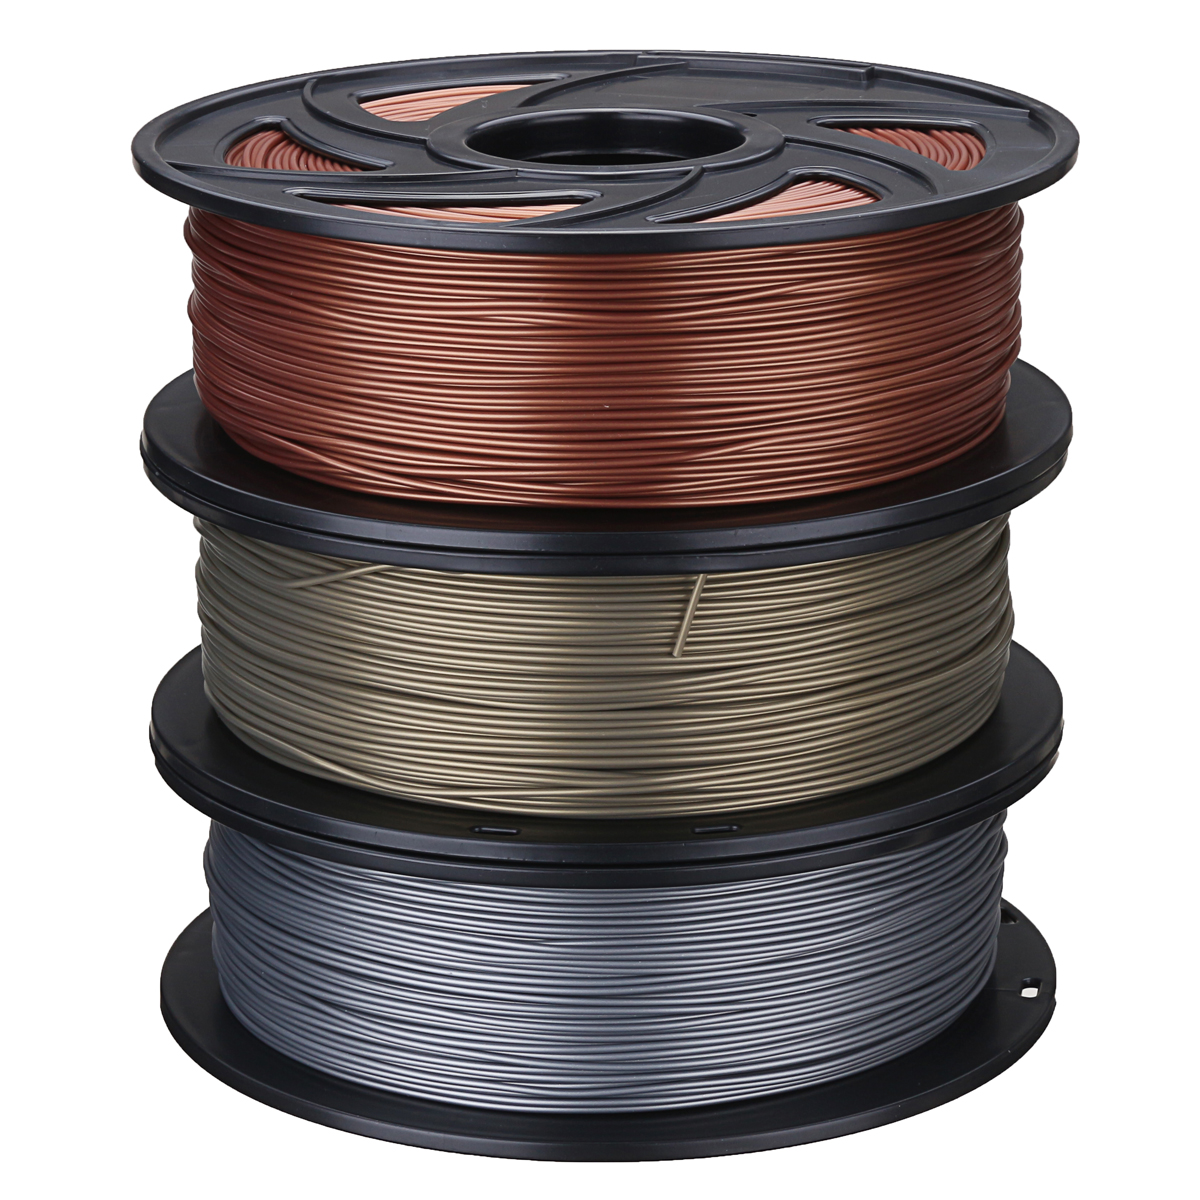 Aluminum/Bronze/Copper 1.75mm 1kg Flexible PLA Filament